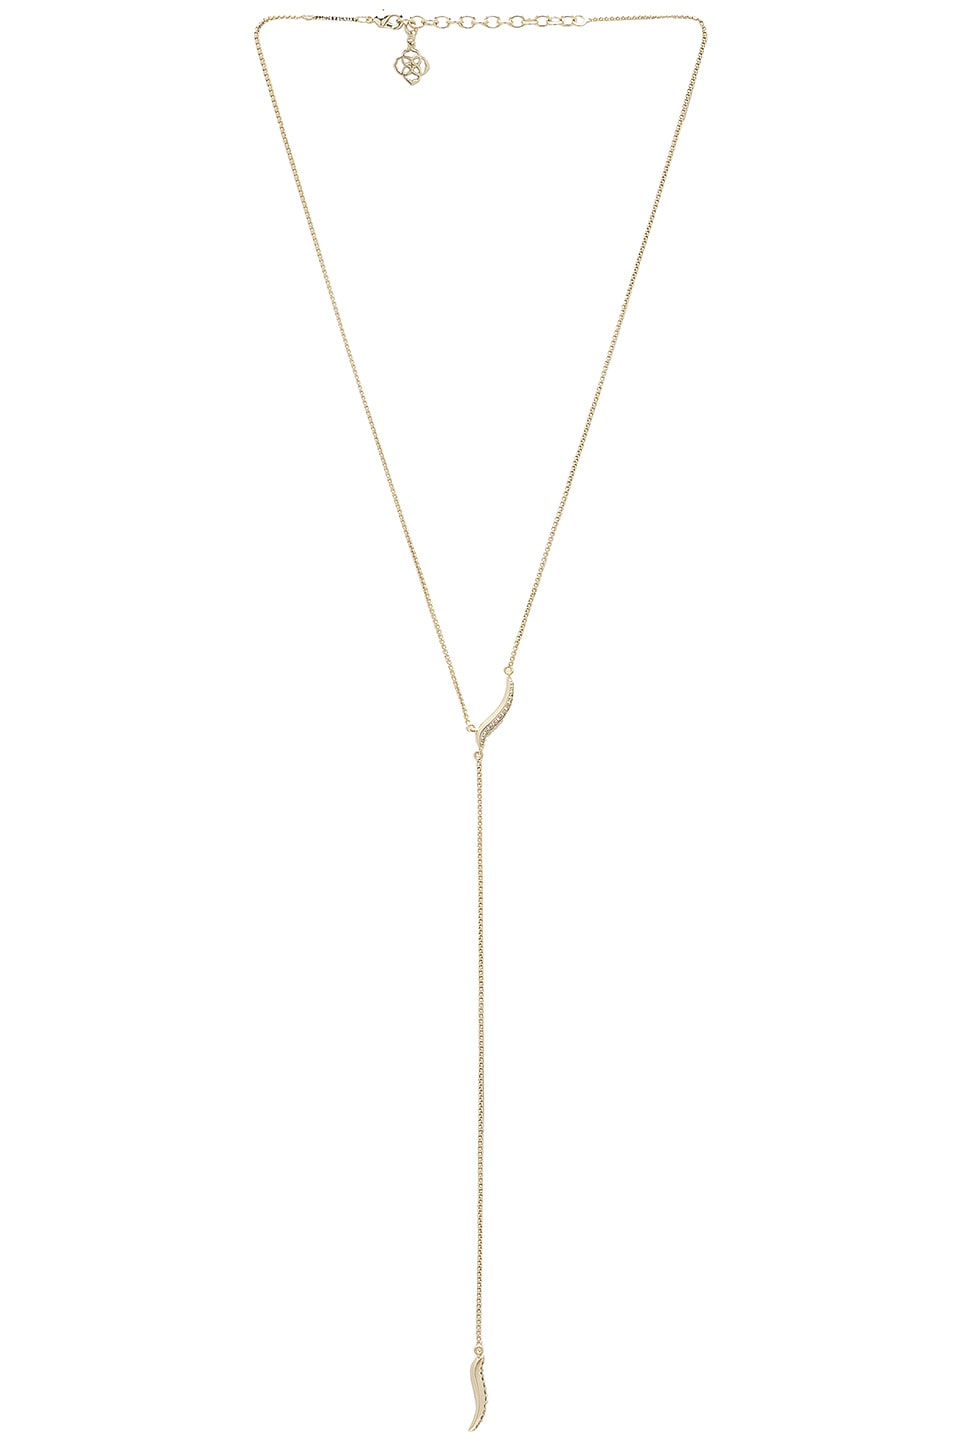 Kendra Scott Jace Necklace in Gold & White CZ